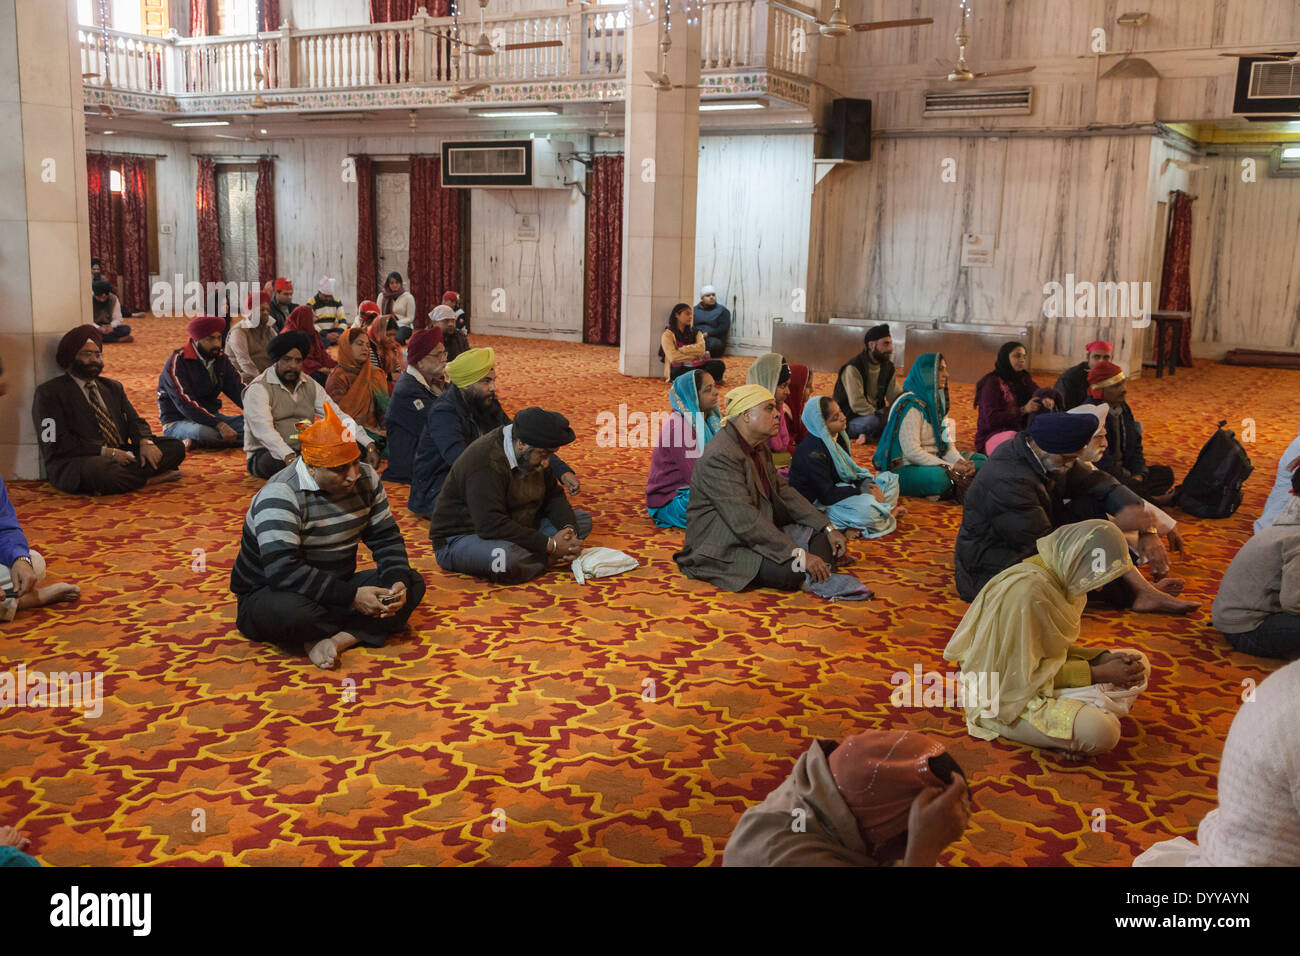 New Delhi, India. Worshipers inside a Sikh Temple (Bangla Sahib Gurudwara) waiting for a Prayer Service to Begin. - Stock Image